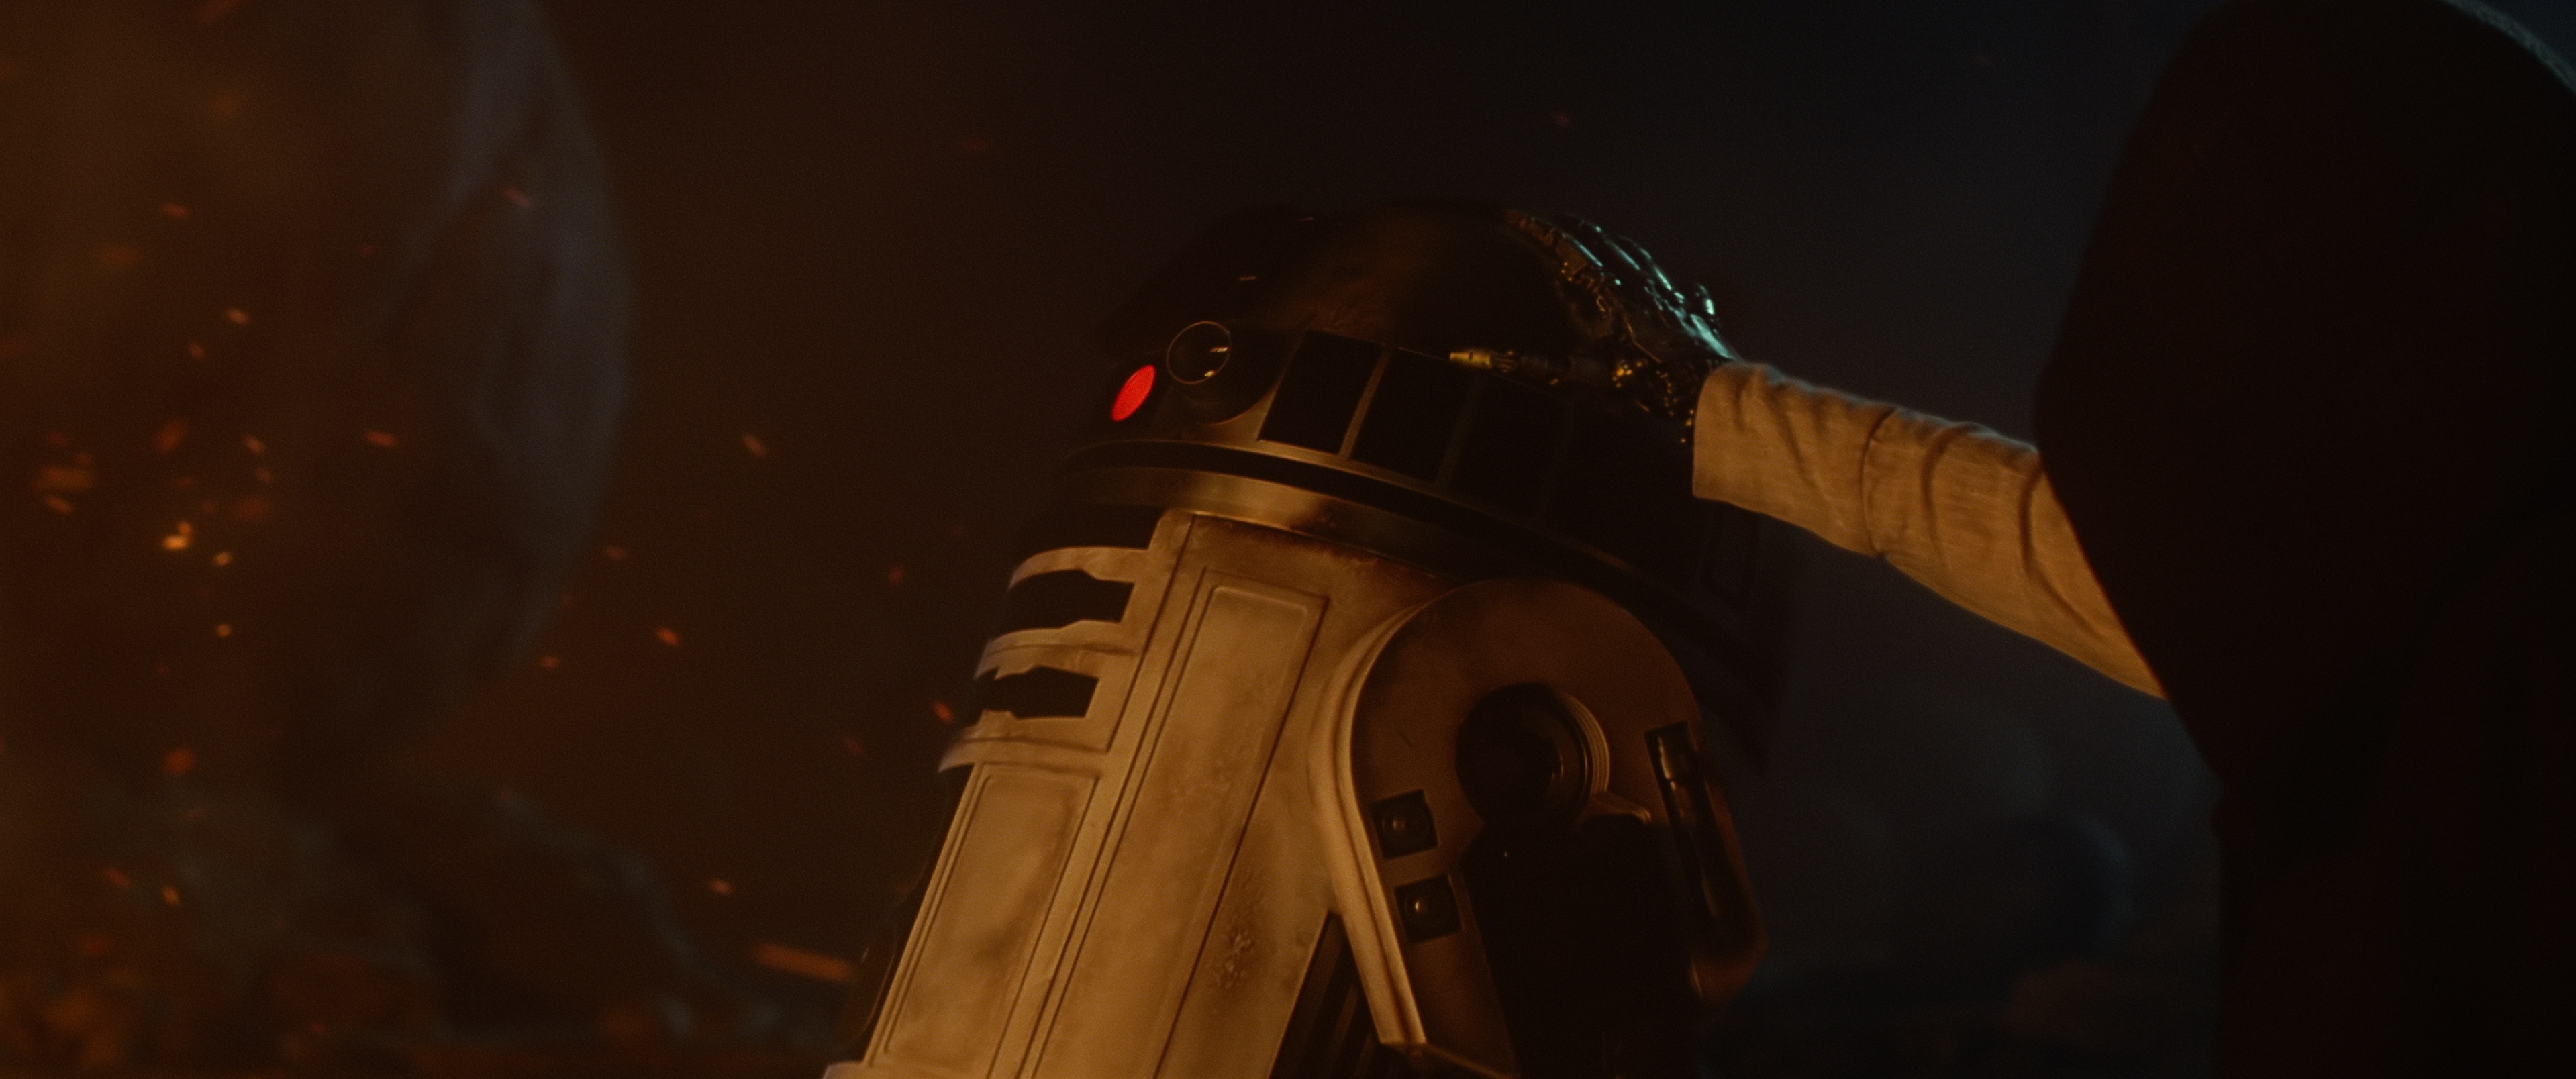 R2-D2 and a hooded character